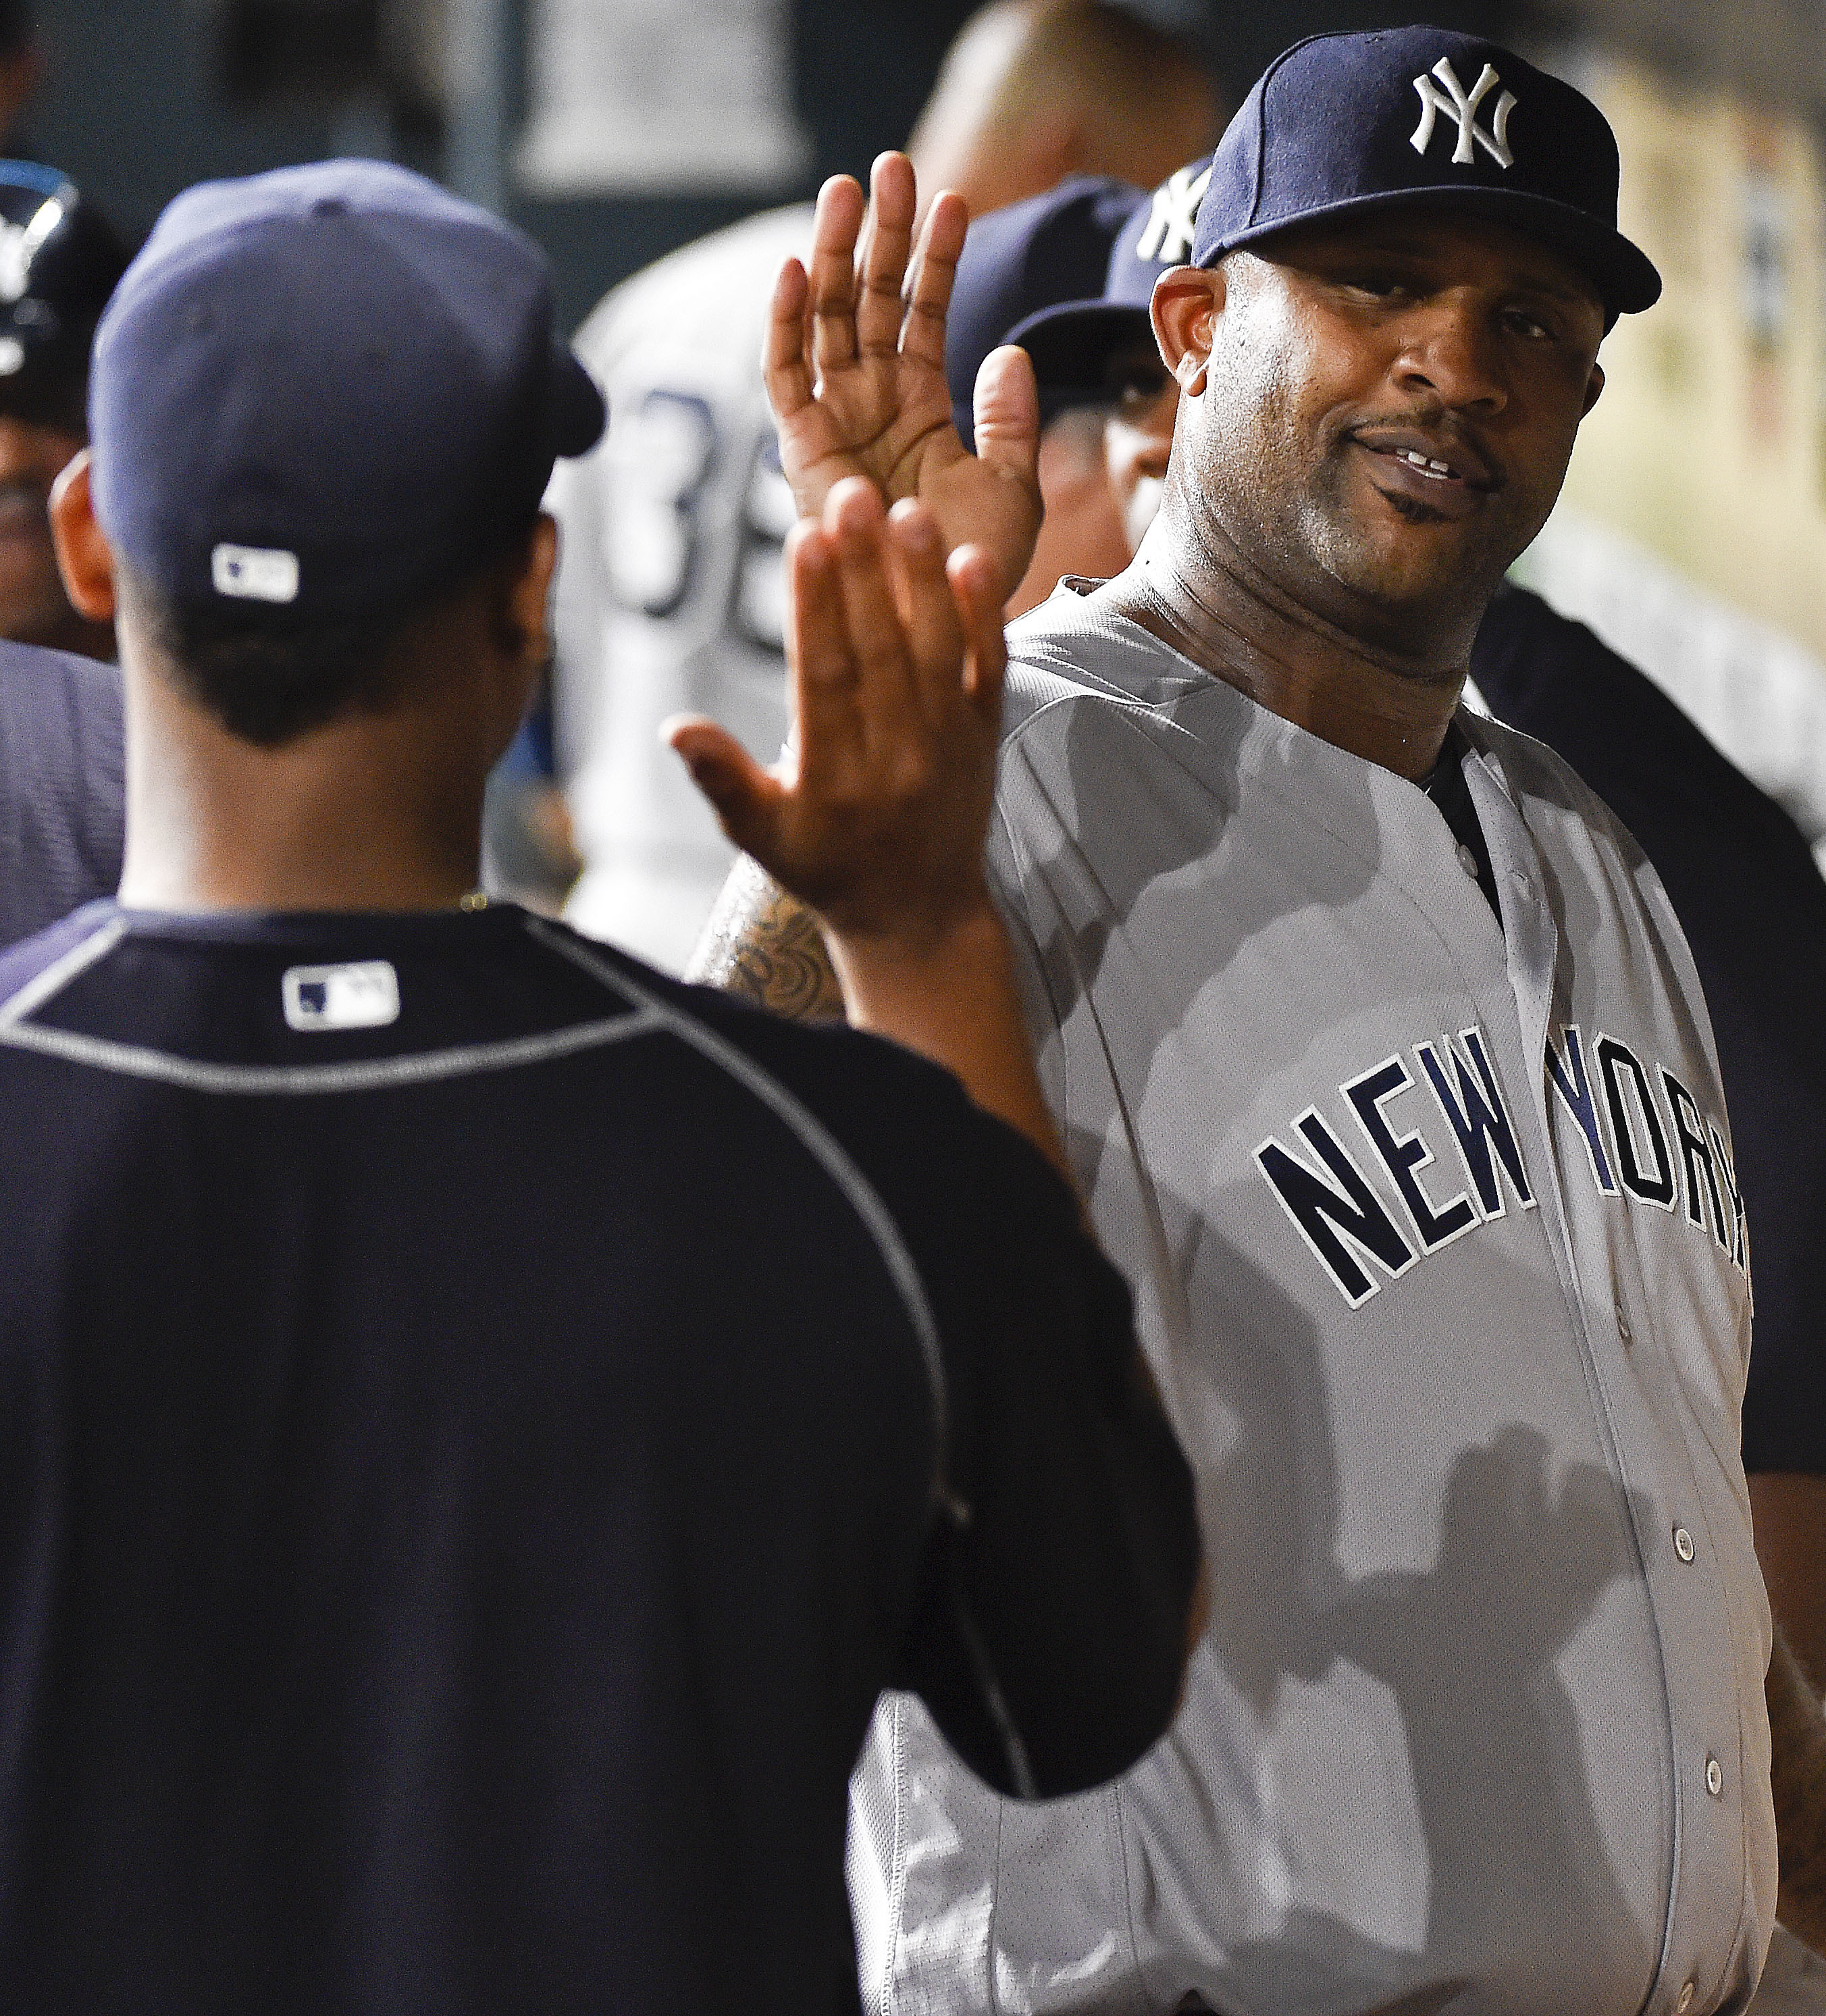 New York Yankees starting pitcher CC Sabathia, right, high-fives a teammate in the dugout after being taken out of the baseball game in the seventh inning against the Houston Astros, Tuesday, July 26, 2016, in Houston. (AP Photo/Eric Christian Smith)